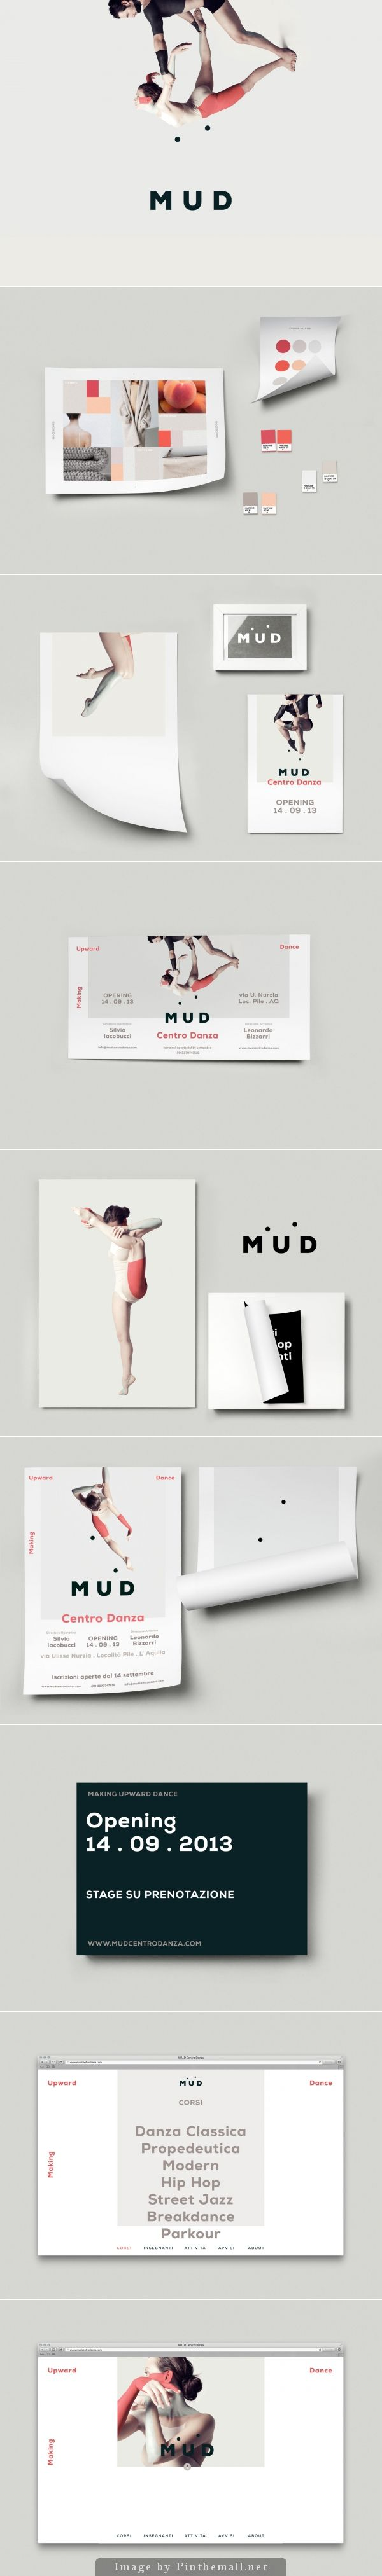 Unique Branding Design, M.U.D http://www.theclocksmiths.it ーーーーーーーーーーーーーーー I love how they incorporated design and dance!!!